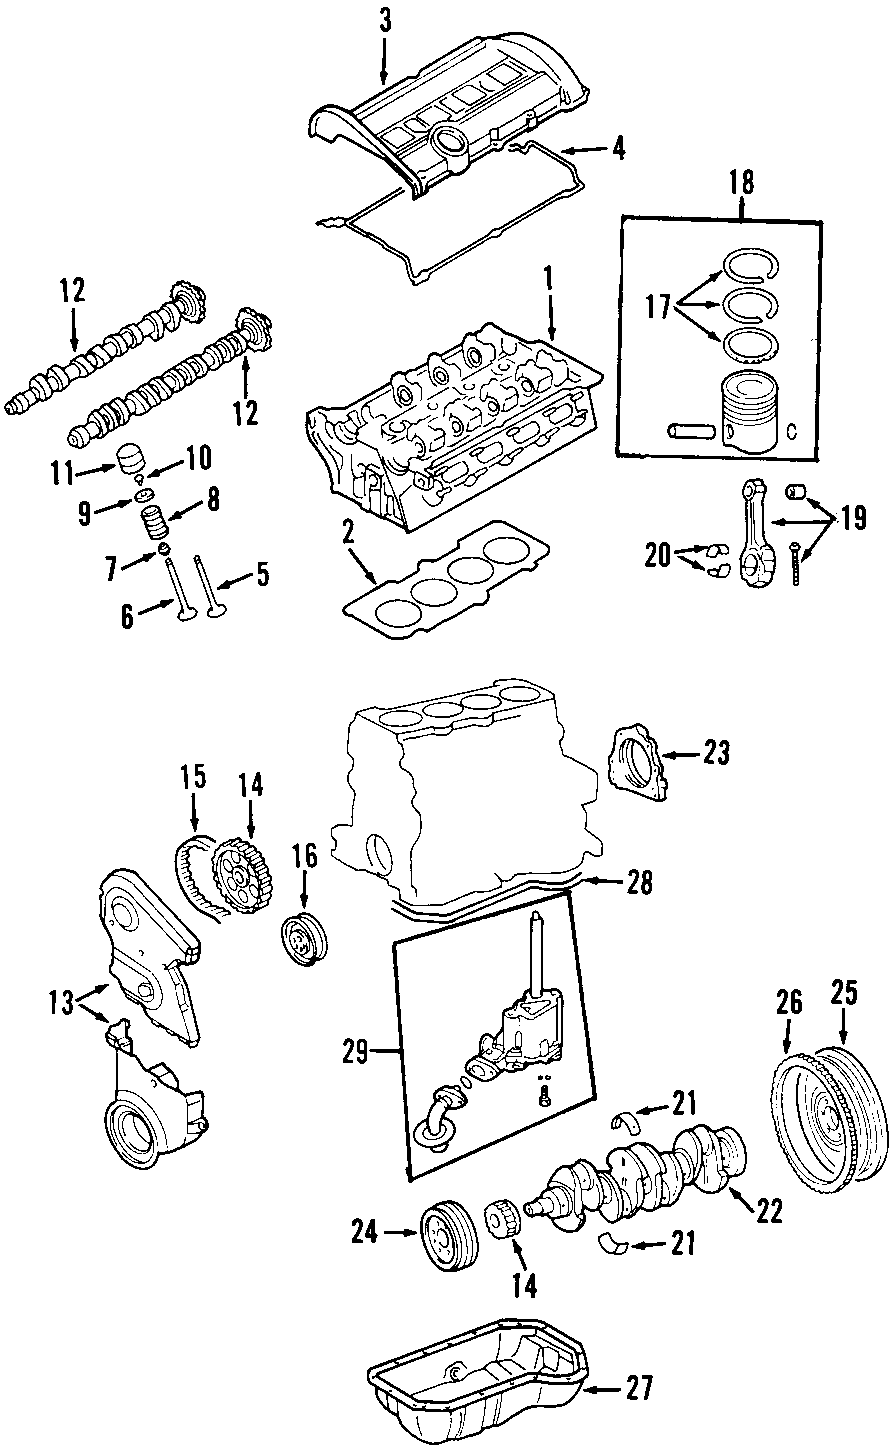 Volkswagen Jetta Timing COVER. (Front, Lower). 1.6 LITER